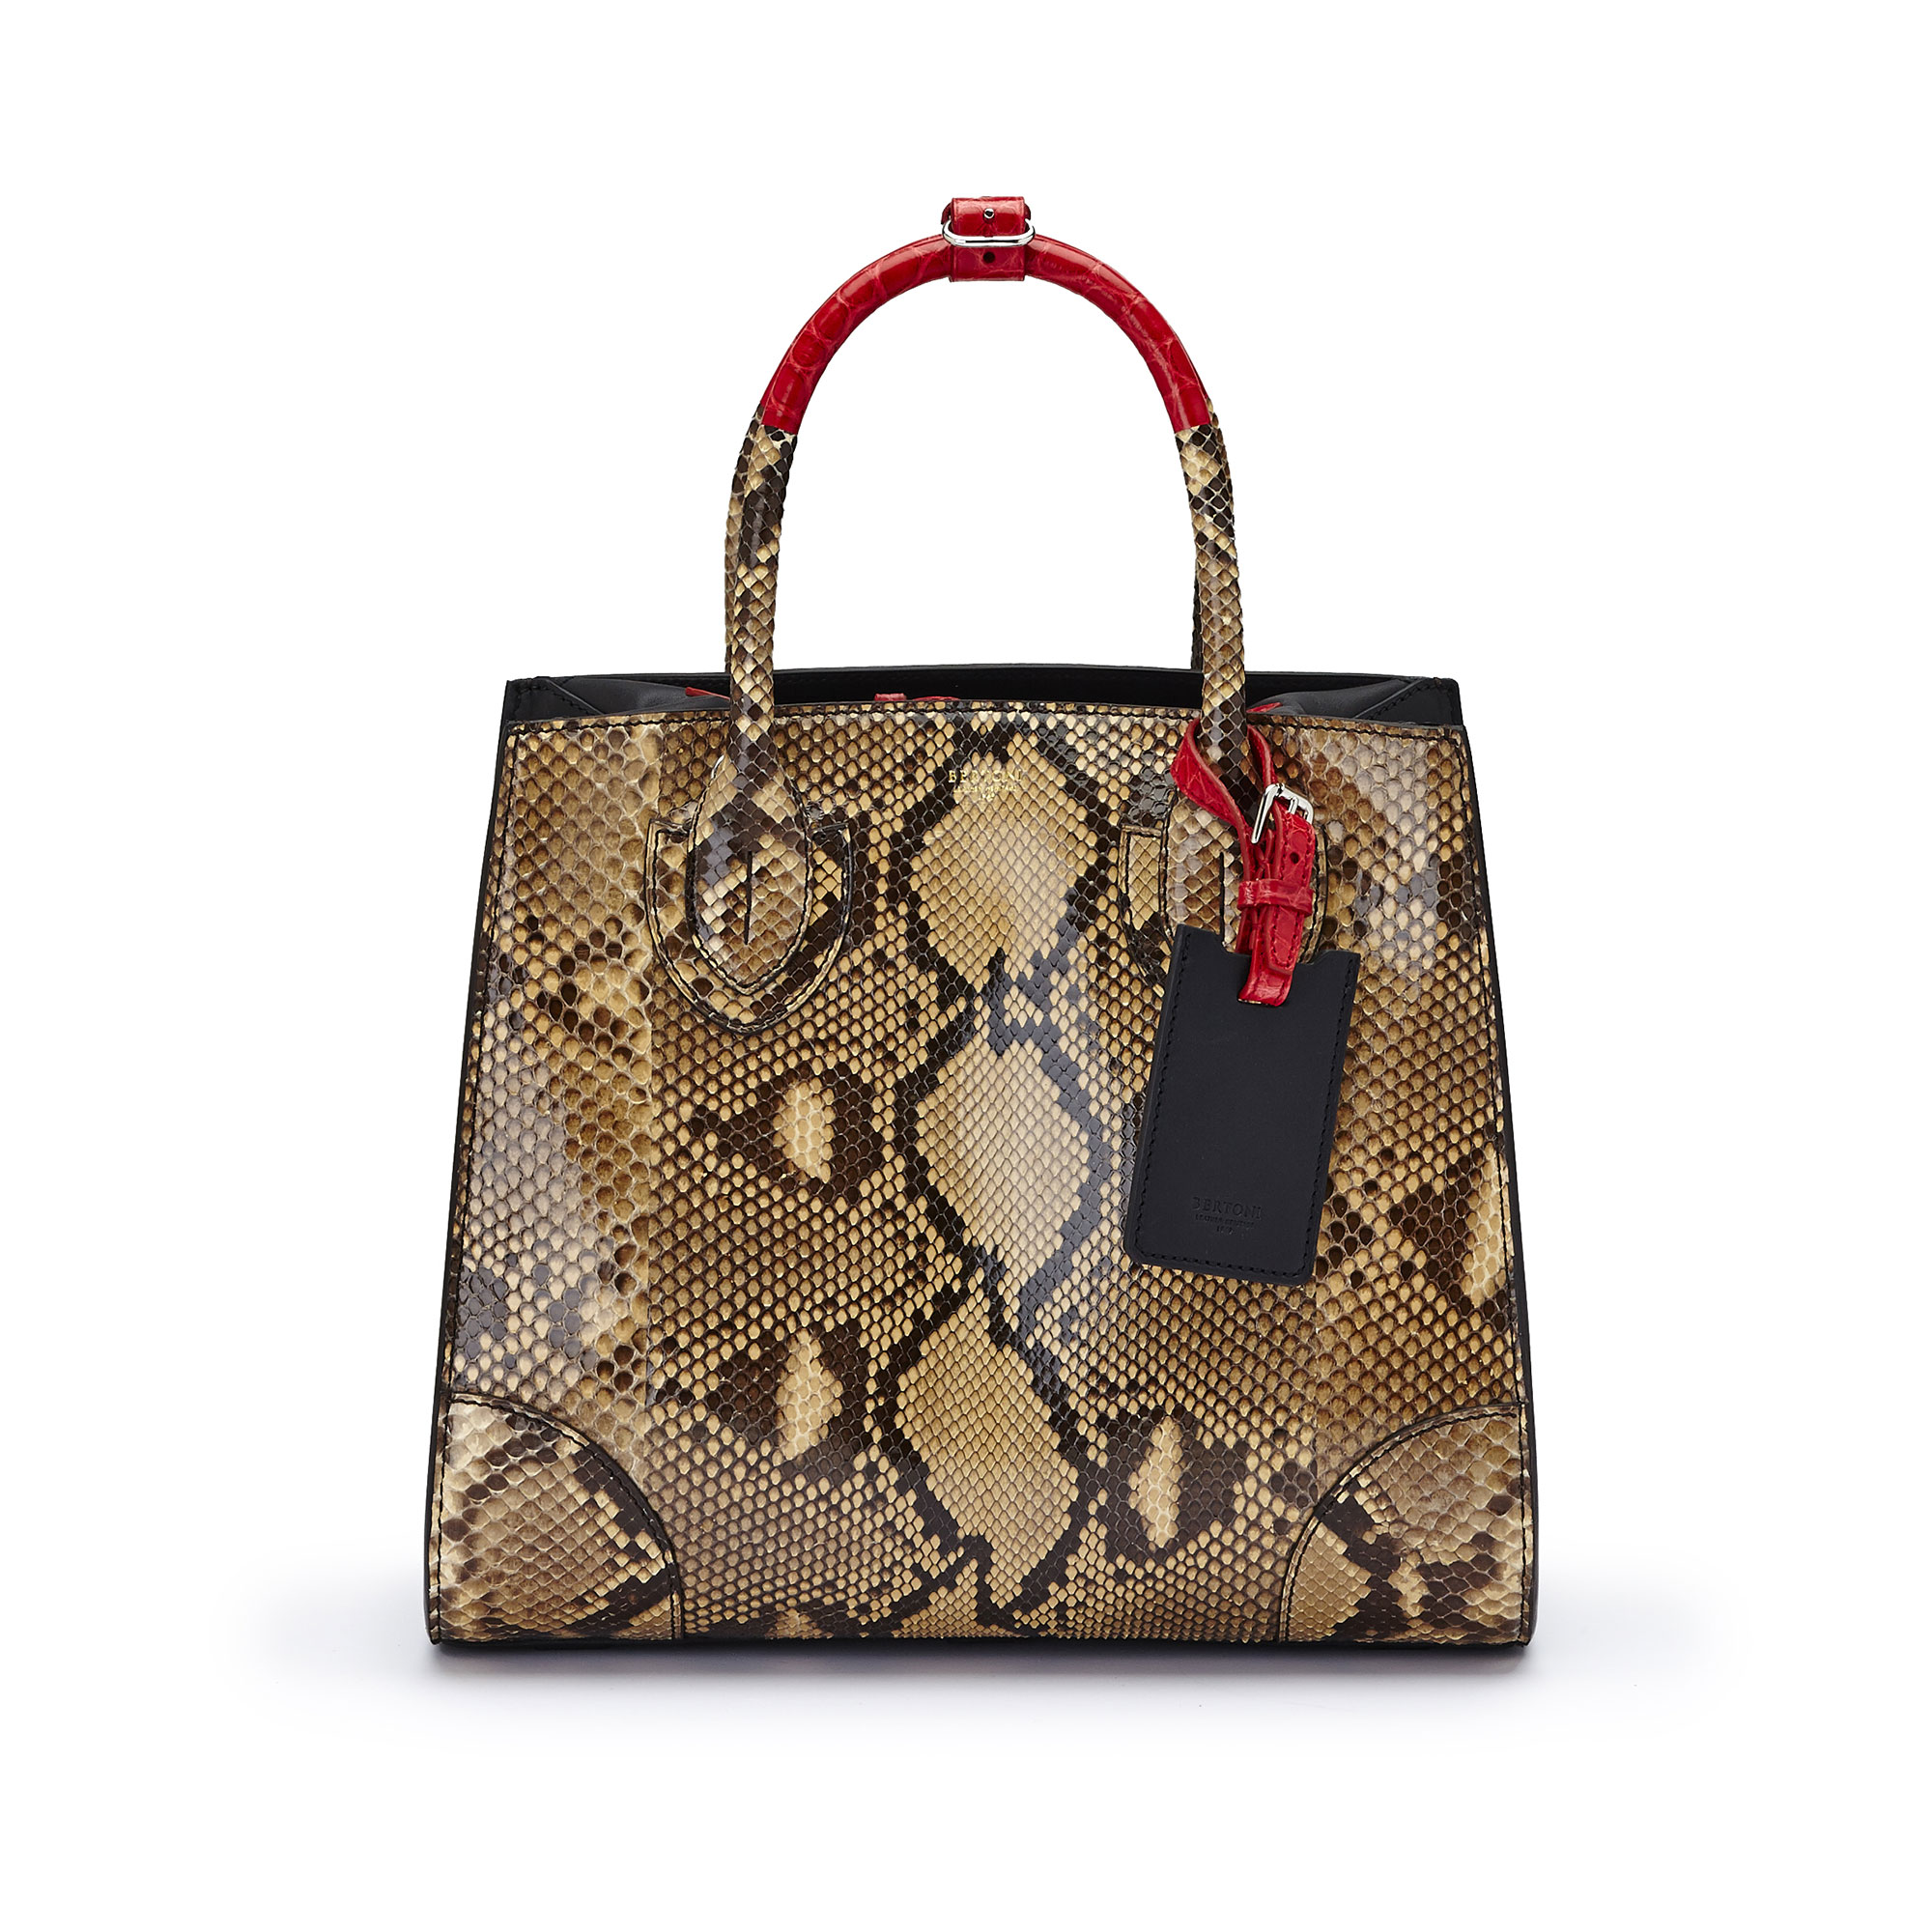 The black and red alligator, french calf, python Darcy bag by Bertoni 1949 02